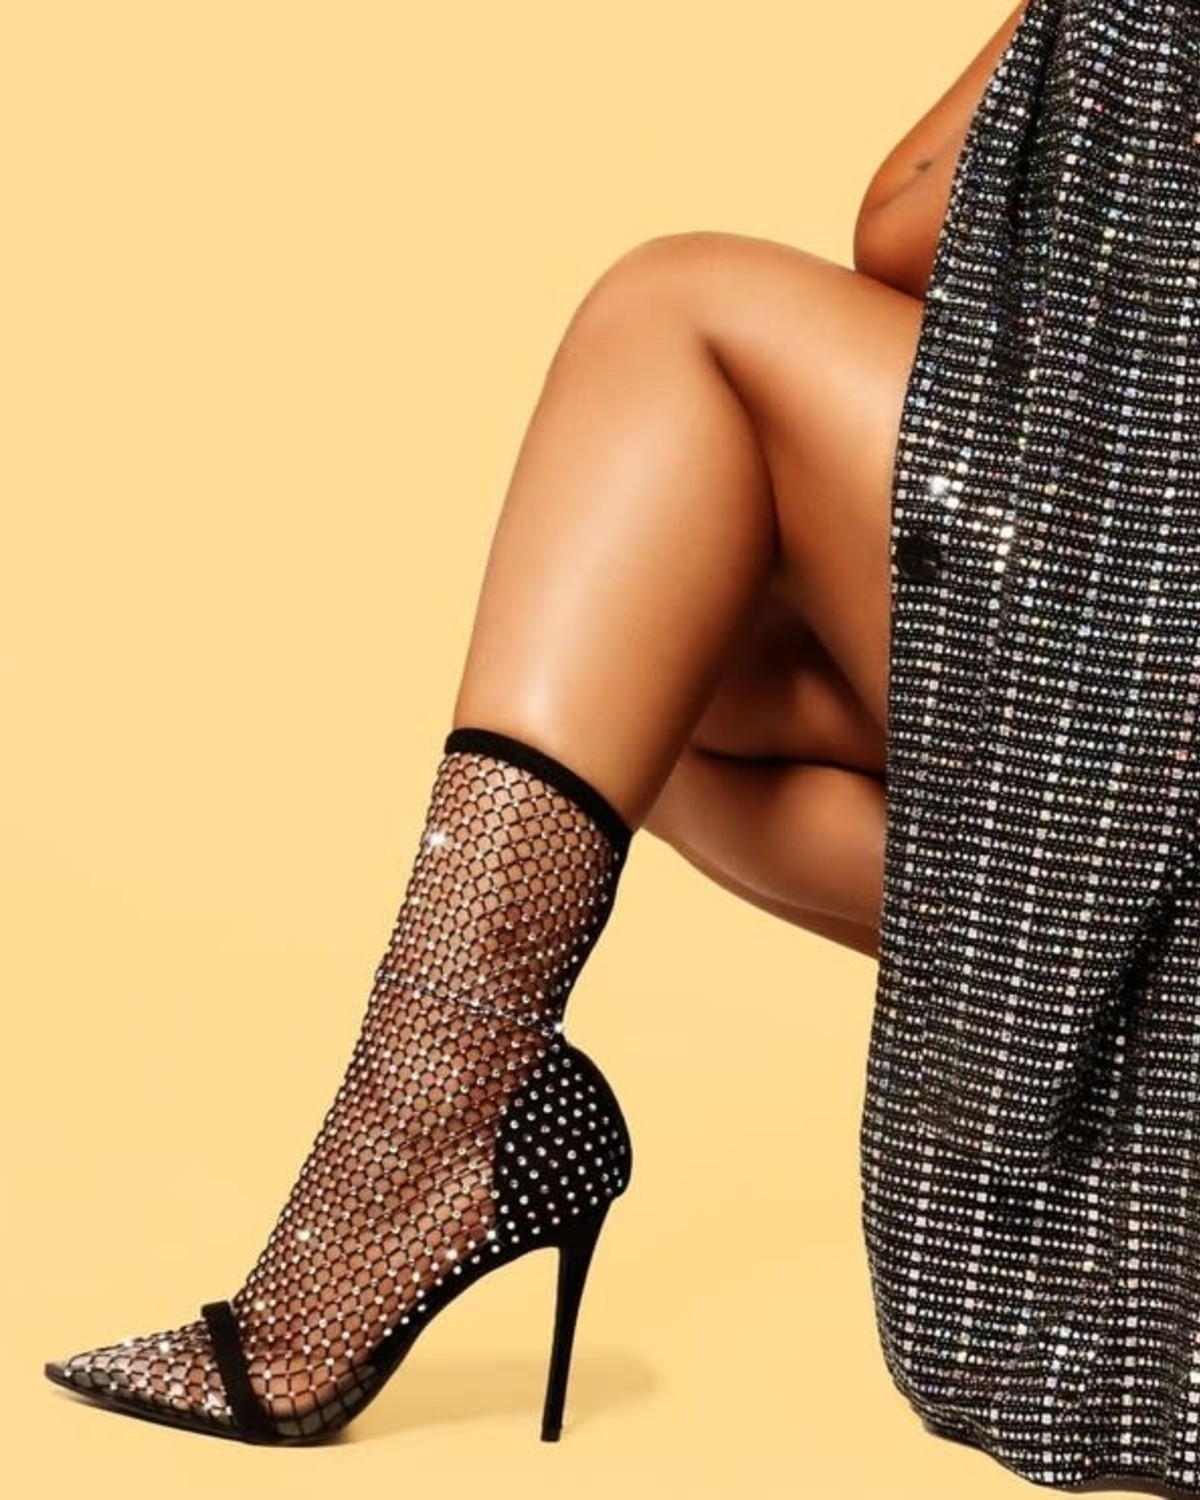 Celeb Status Fishnet Pumps